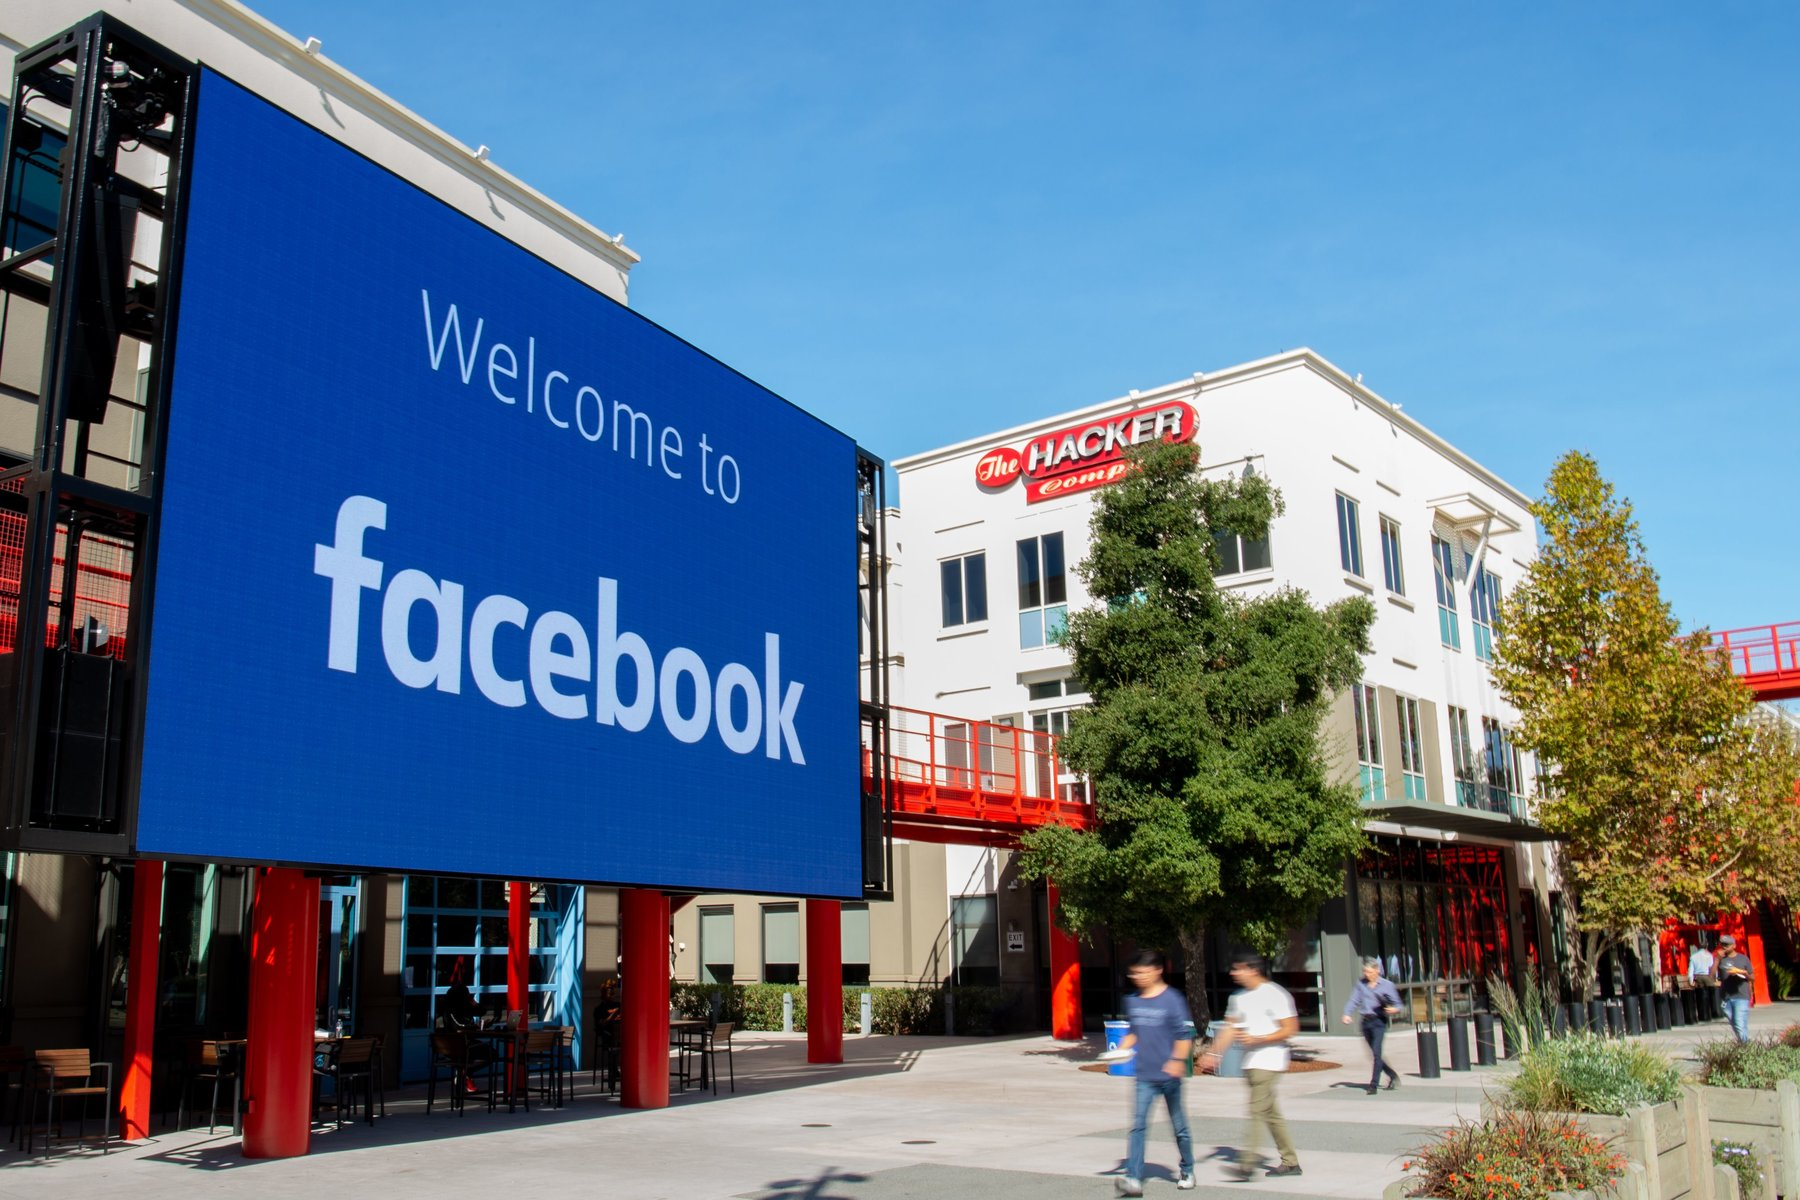 According to whistleblower, Facebook promotes hate speech for extra profit